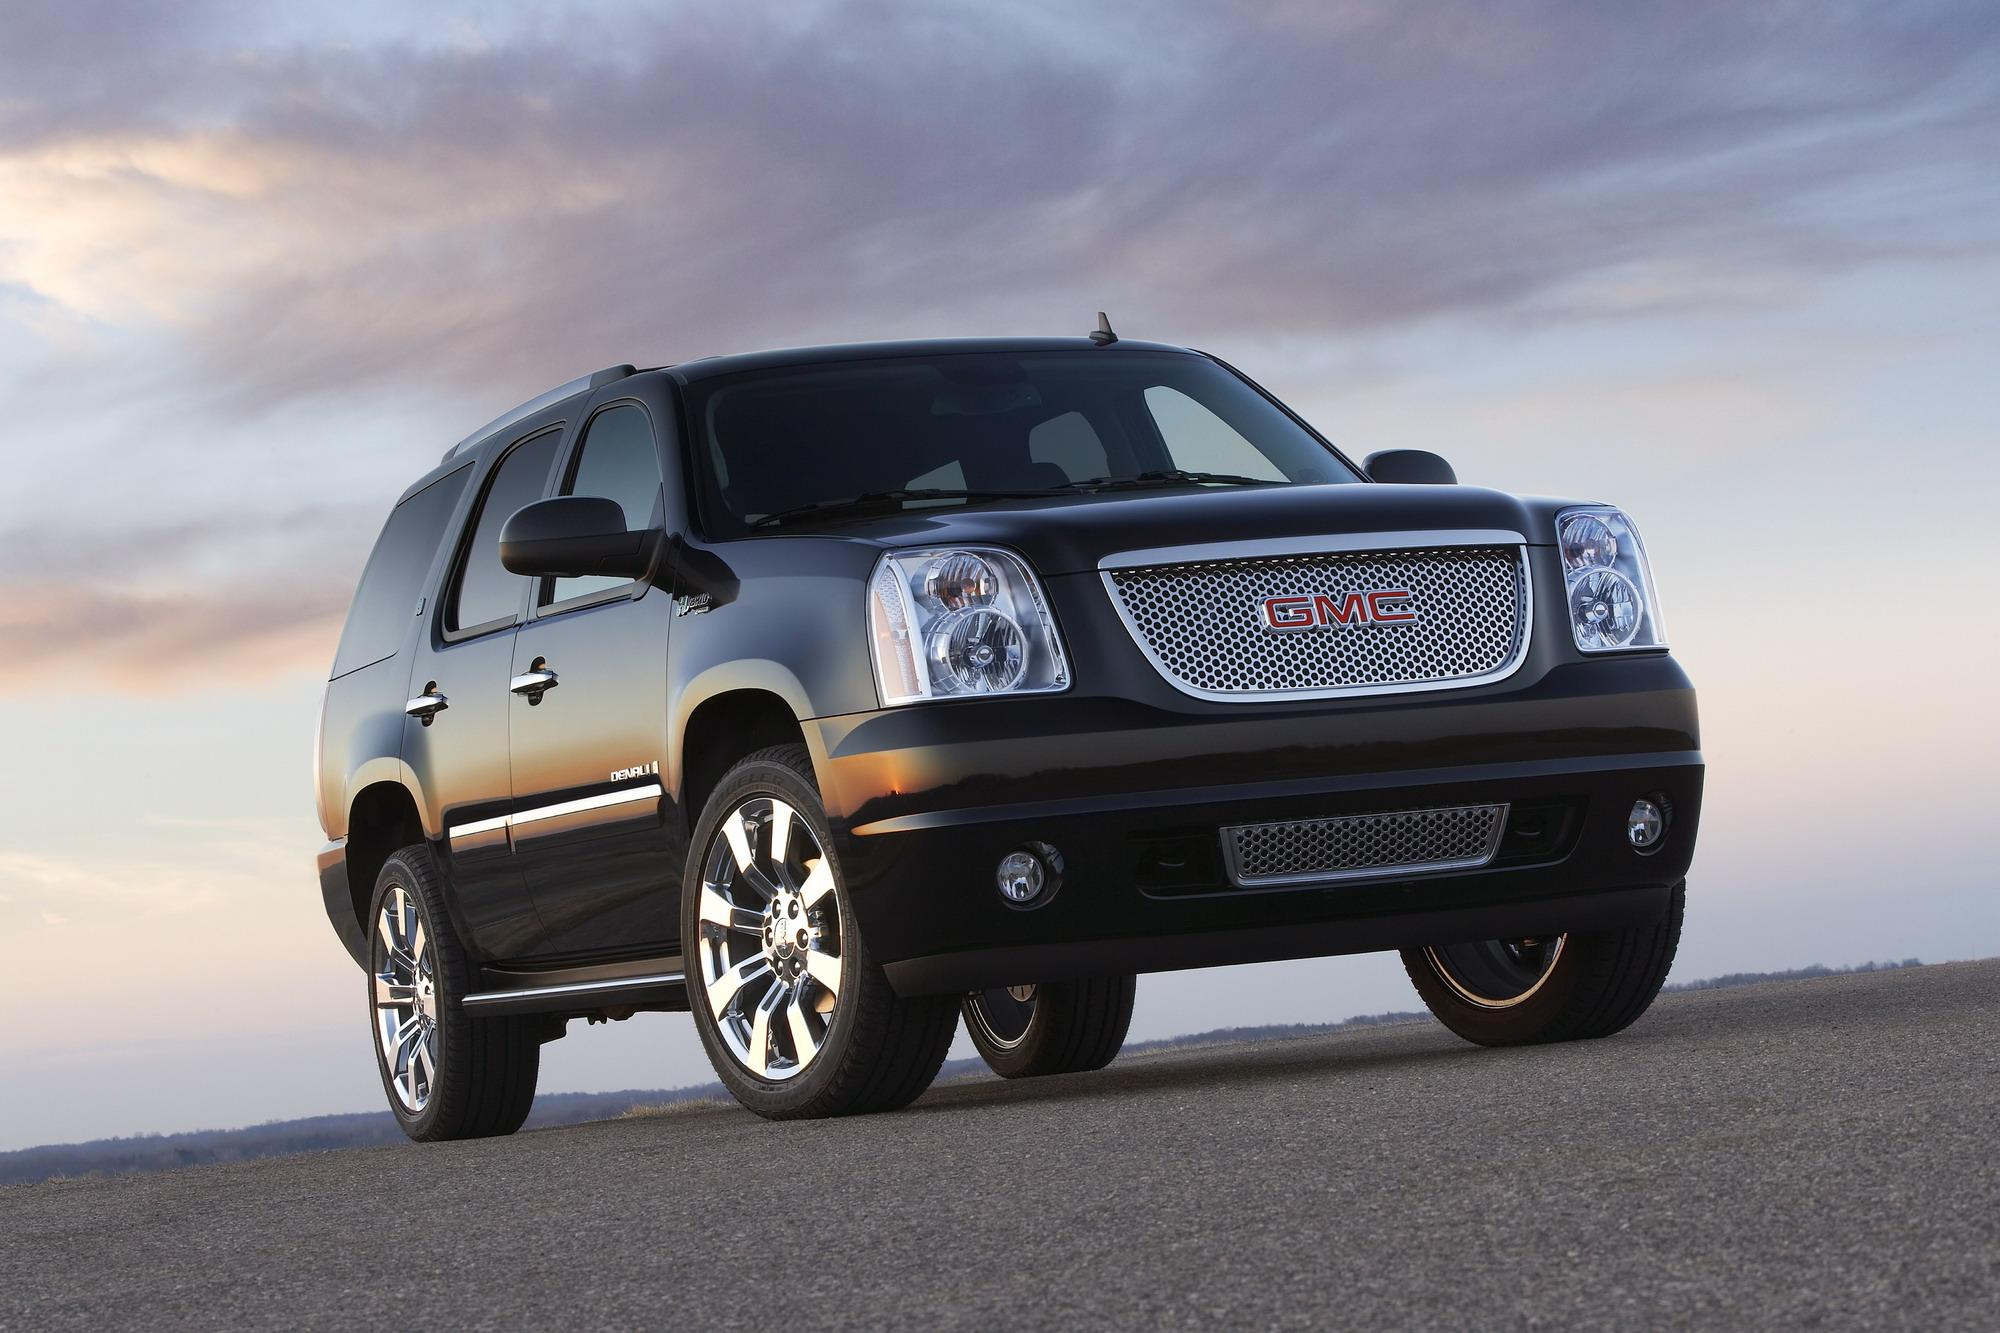 2009 gmc yukon denali hybrid review top speed. Black Bedroom Furniture Sets. Home Design Ideas